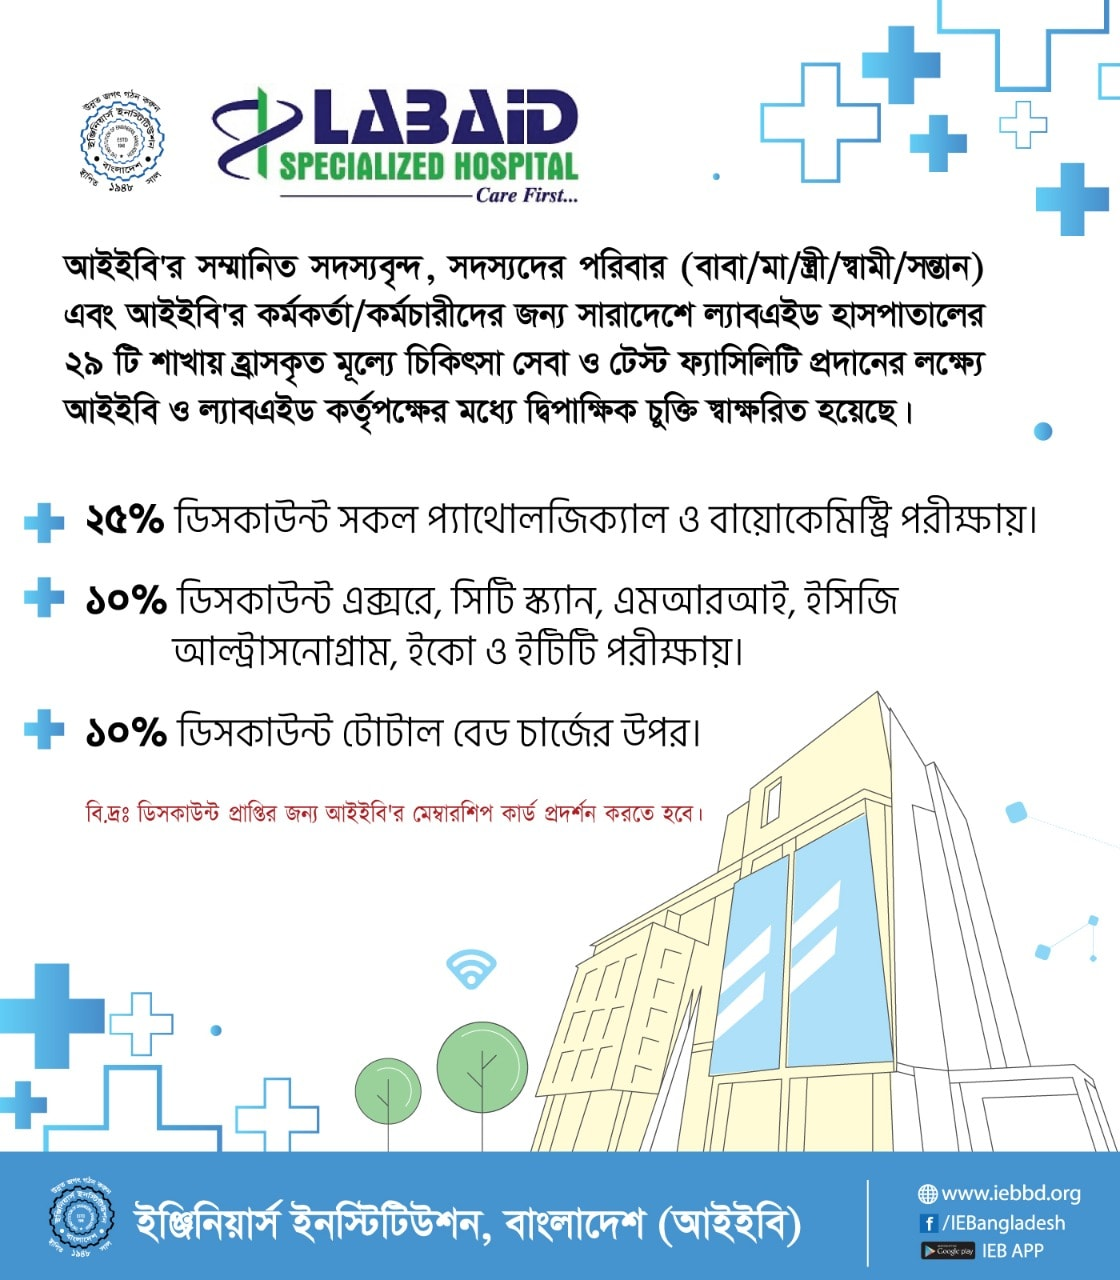 Bilateral agreement between IEB and Labaid